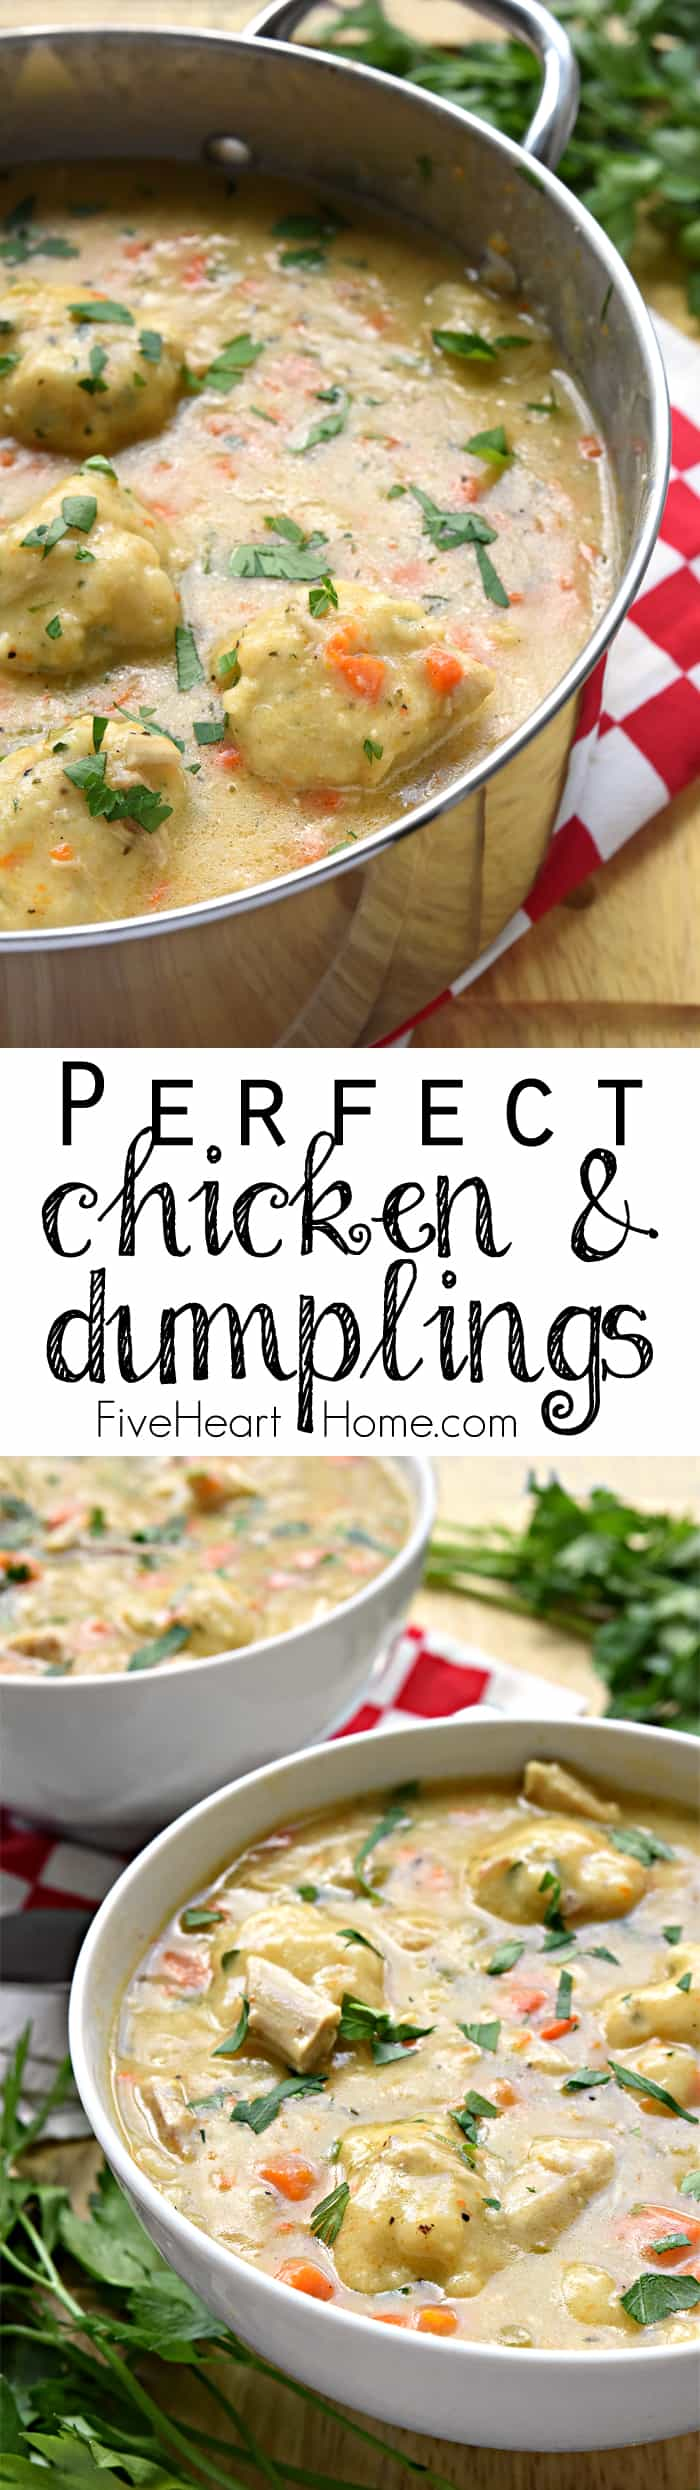 The BEST Chicken and Dumplings ~ a comfort food classic of flavorful broth, tender chicken, sweet carrots, fresh herbs, & fluffy homemade dumplings! | FiveHeartHome.com #chickenanddumplings via @fivehearthome